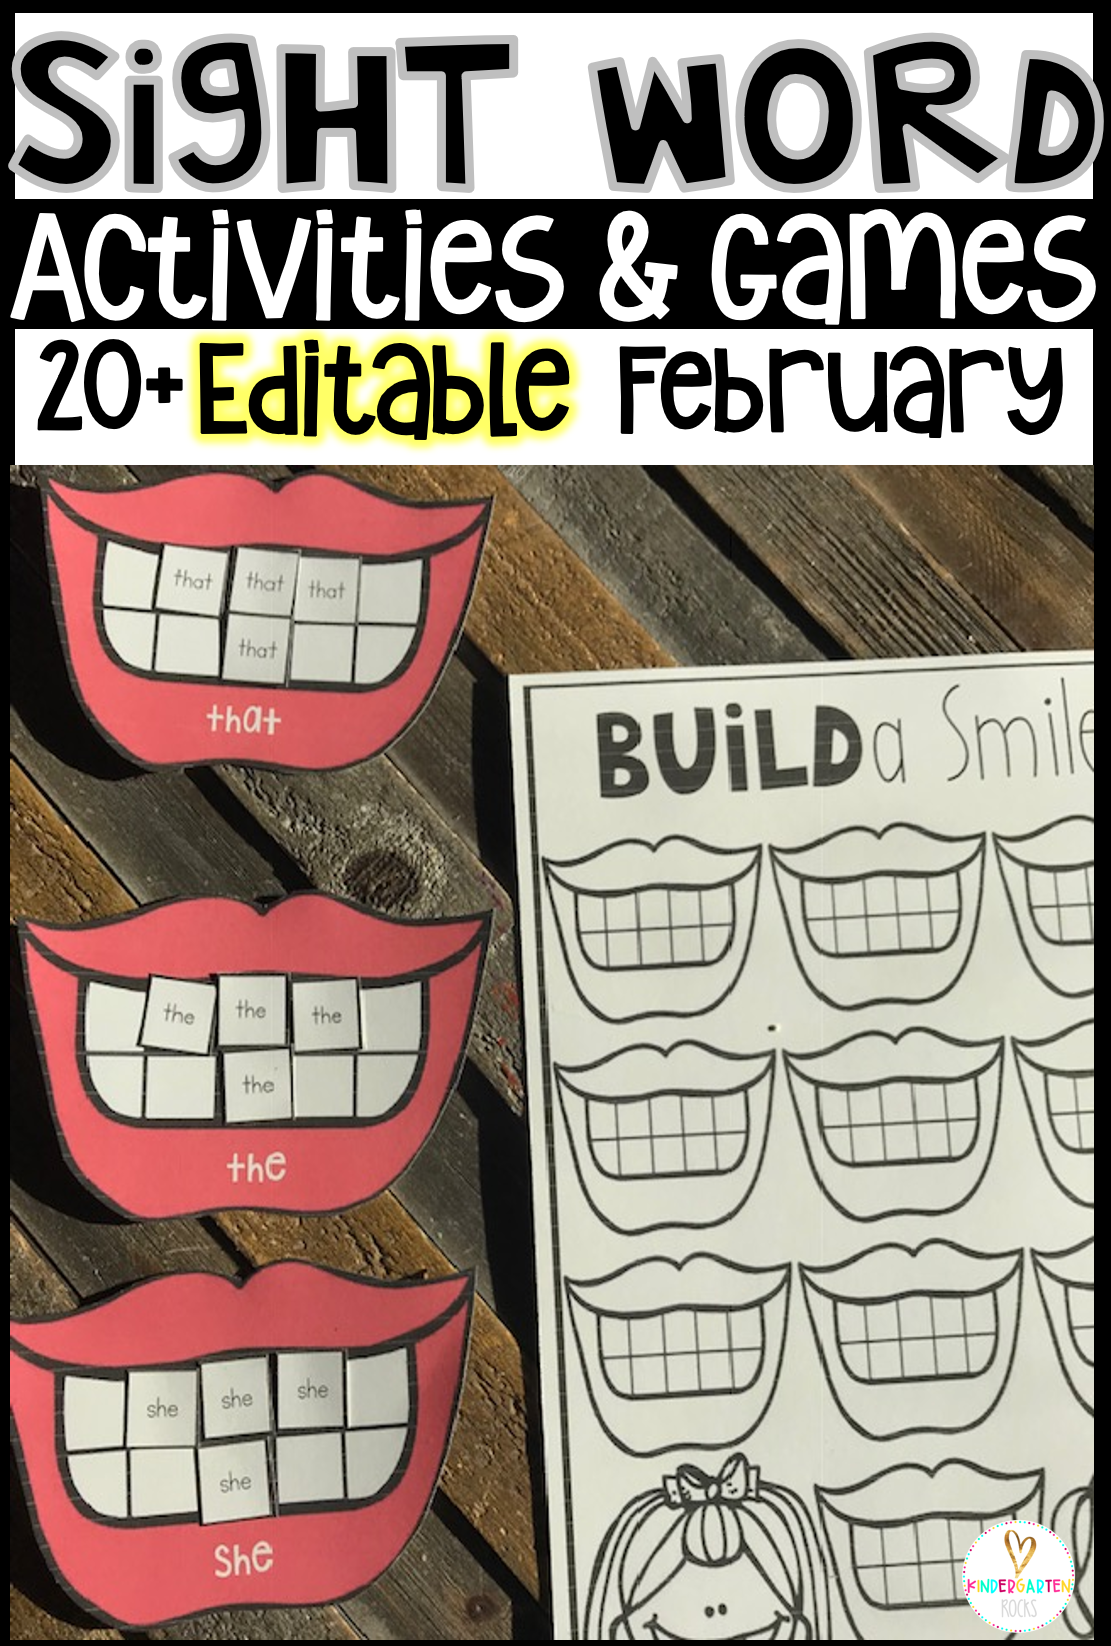 Are you looking for Valentine's Day, Groundhog and Dental themed editable sight word activities that you can change to meet the needs of your kindergarten or first grade students? Then, you will love Editable Sight Words Printables, Activities and Games for February.